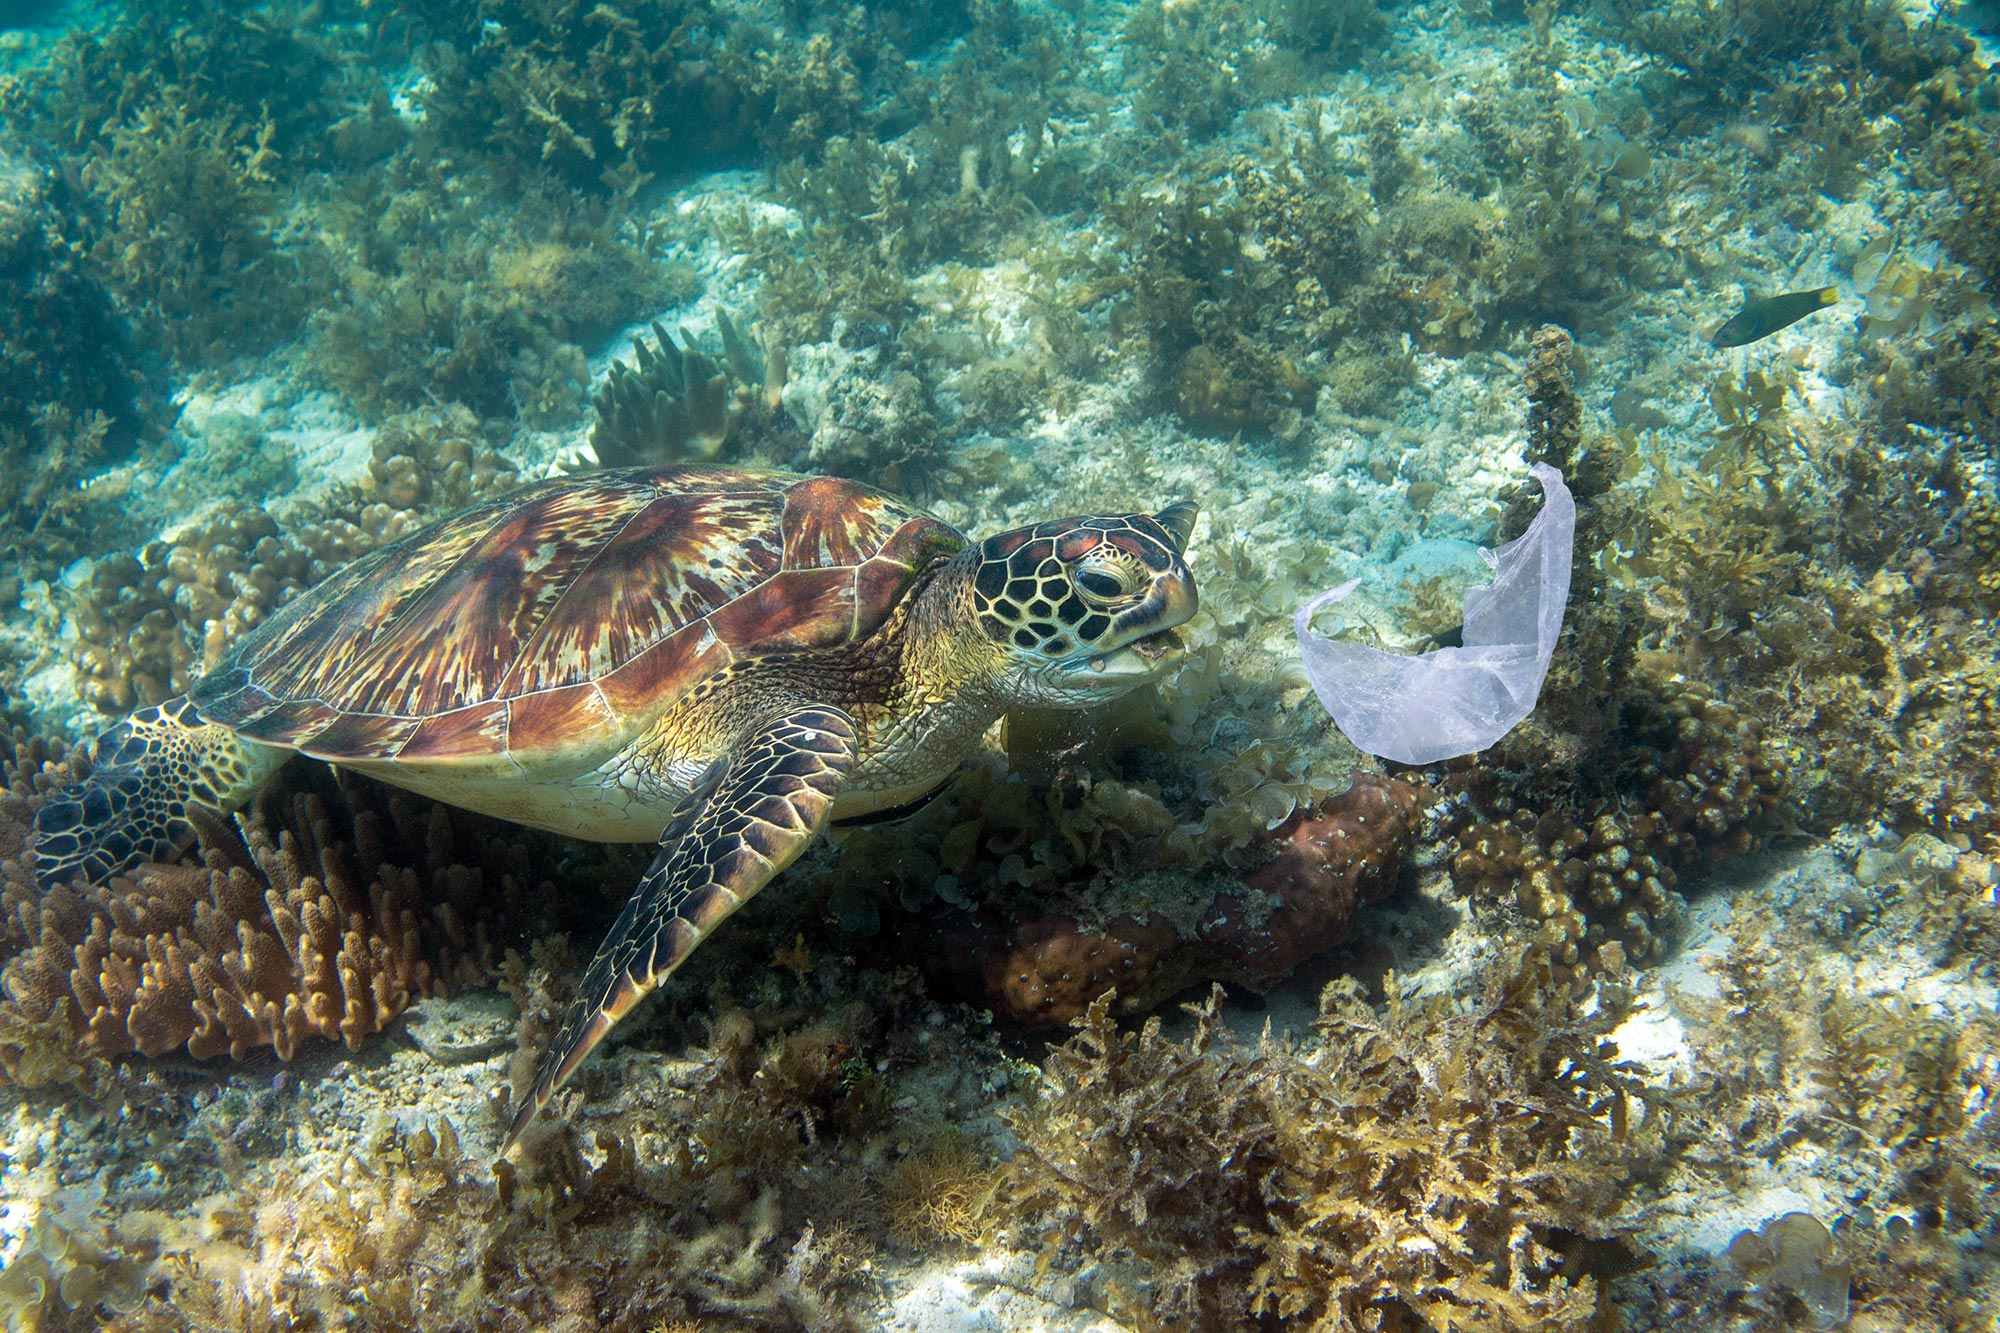 Sea turtles eat plastic because it smells like food, study shows